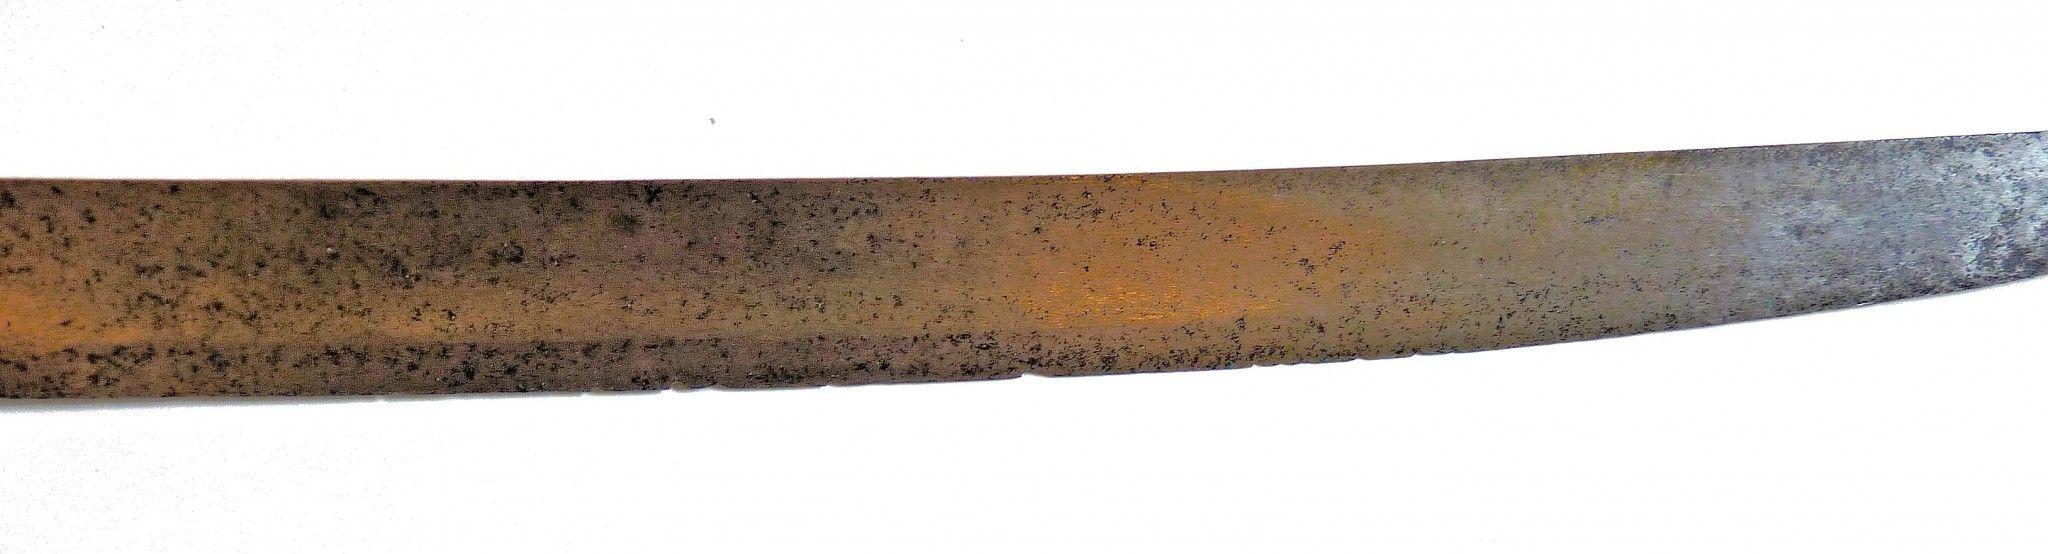 SEction of bladeshowing condition and nicks image